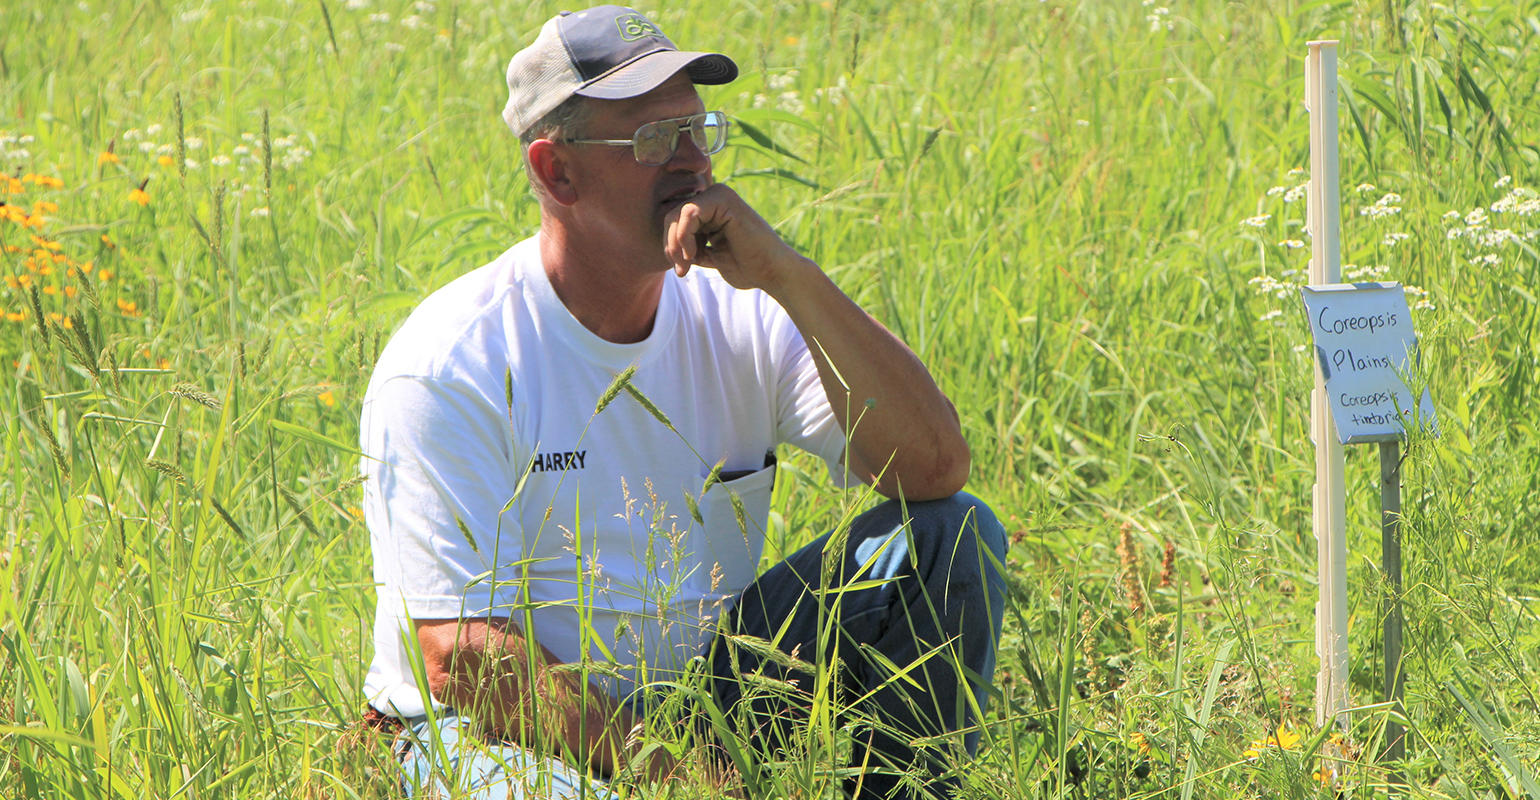 Montgomery County farmer Harry Cope kneels in native grass